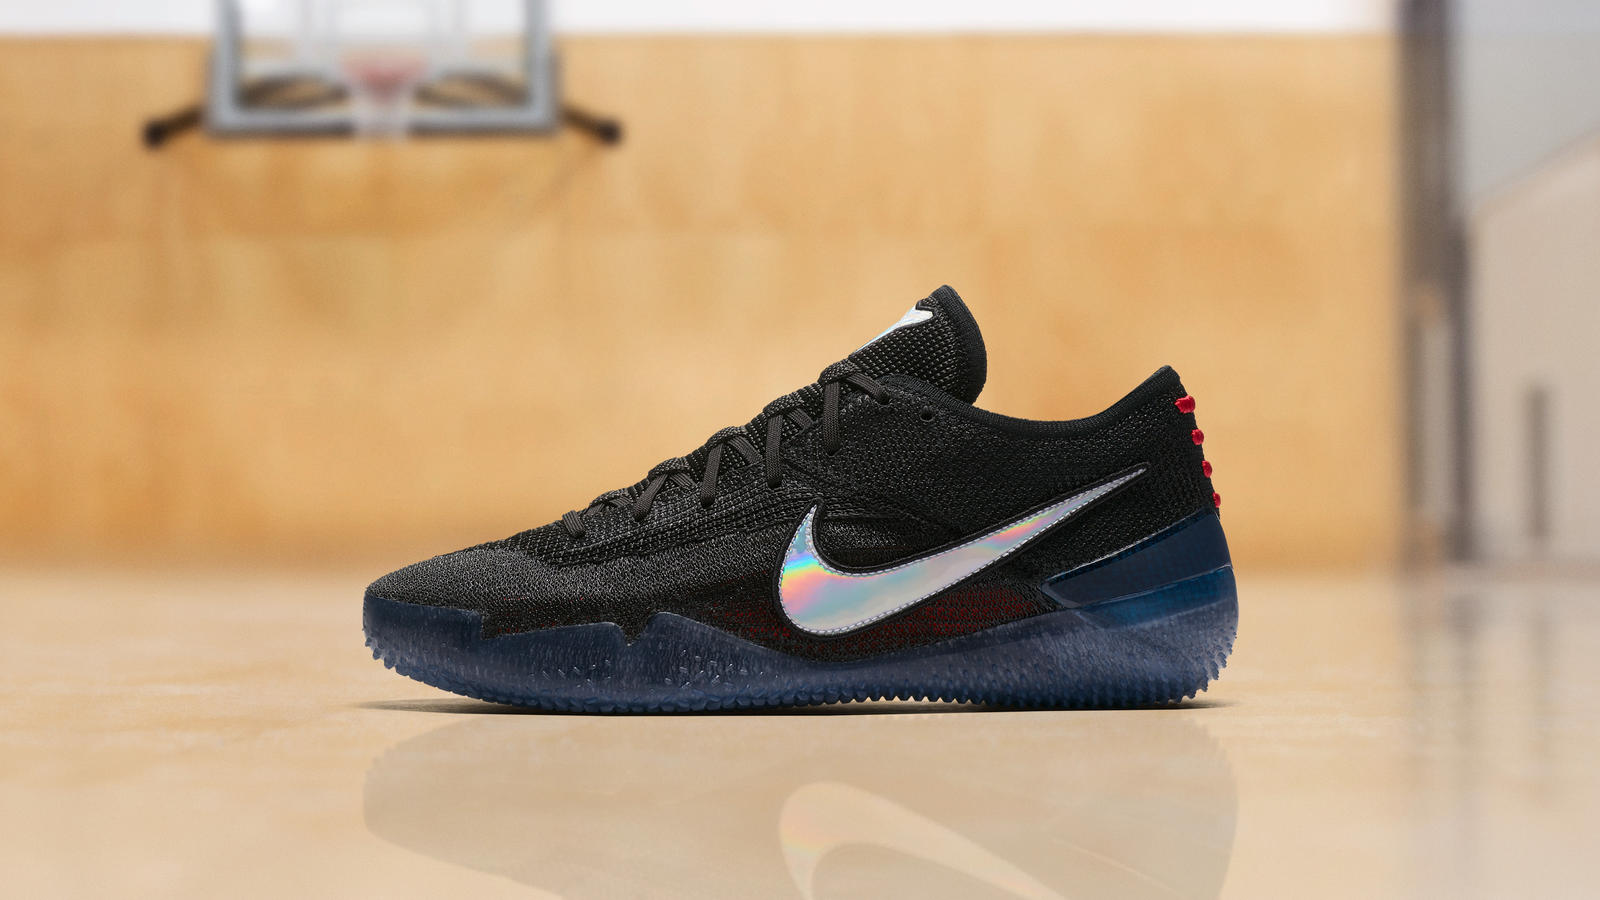 size 40 665b0 7b922 Nike Shares the Data That Inspired the Kobe NXT 360, its ...